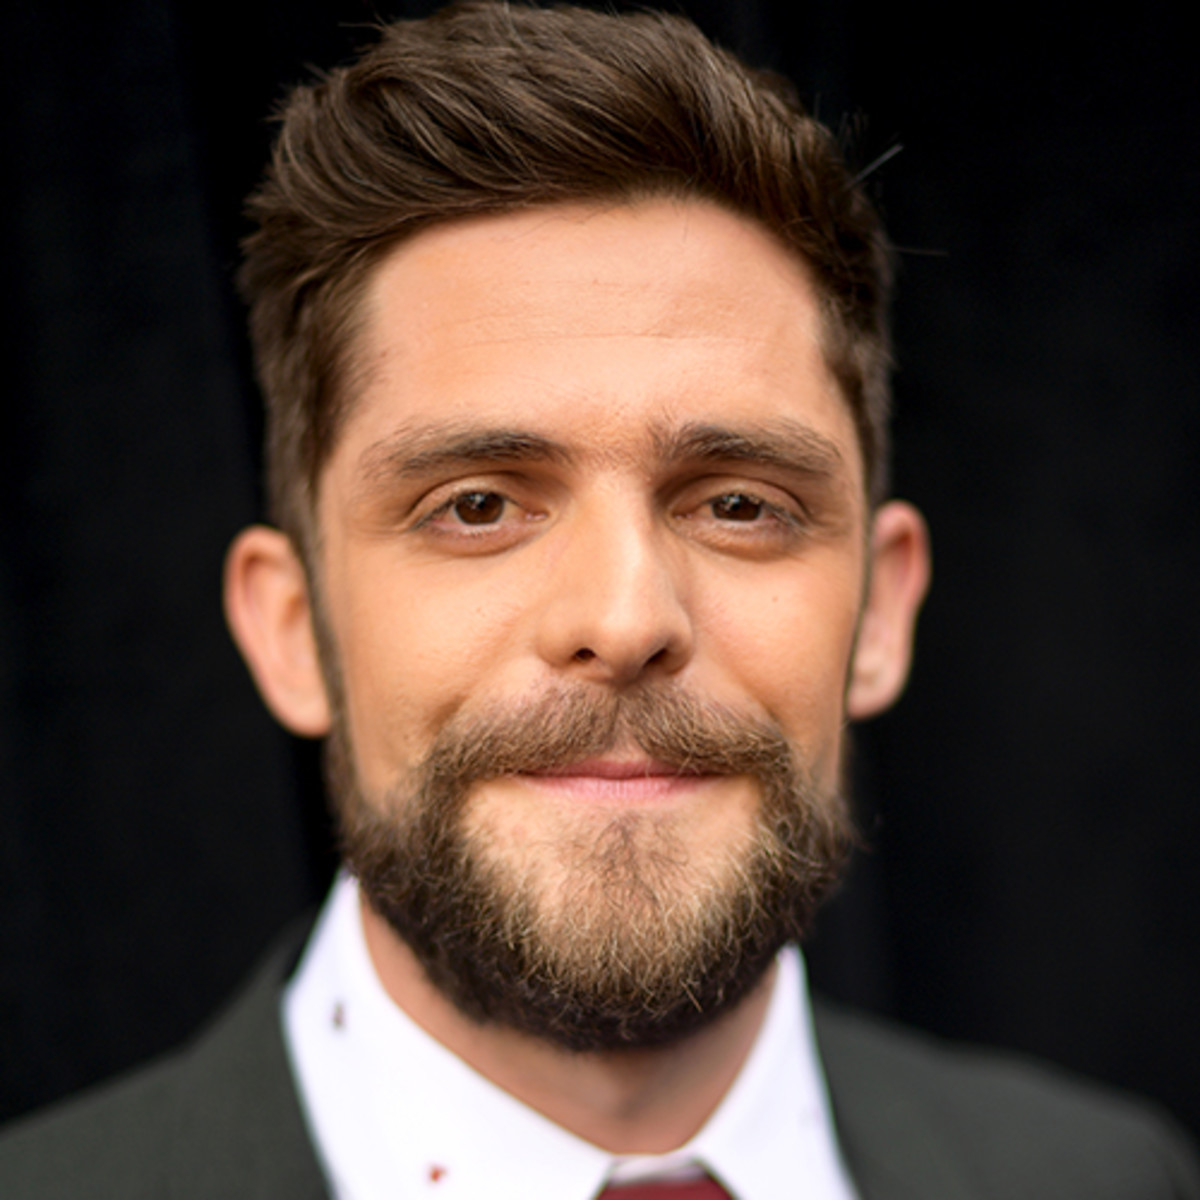 Thomas Rhett Phone Number, Fanmail Address and Contact Details